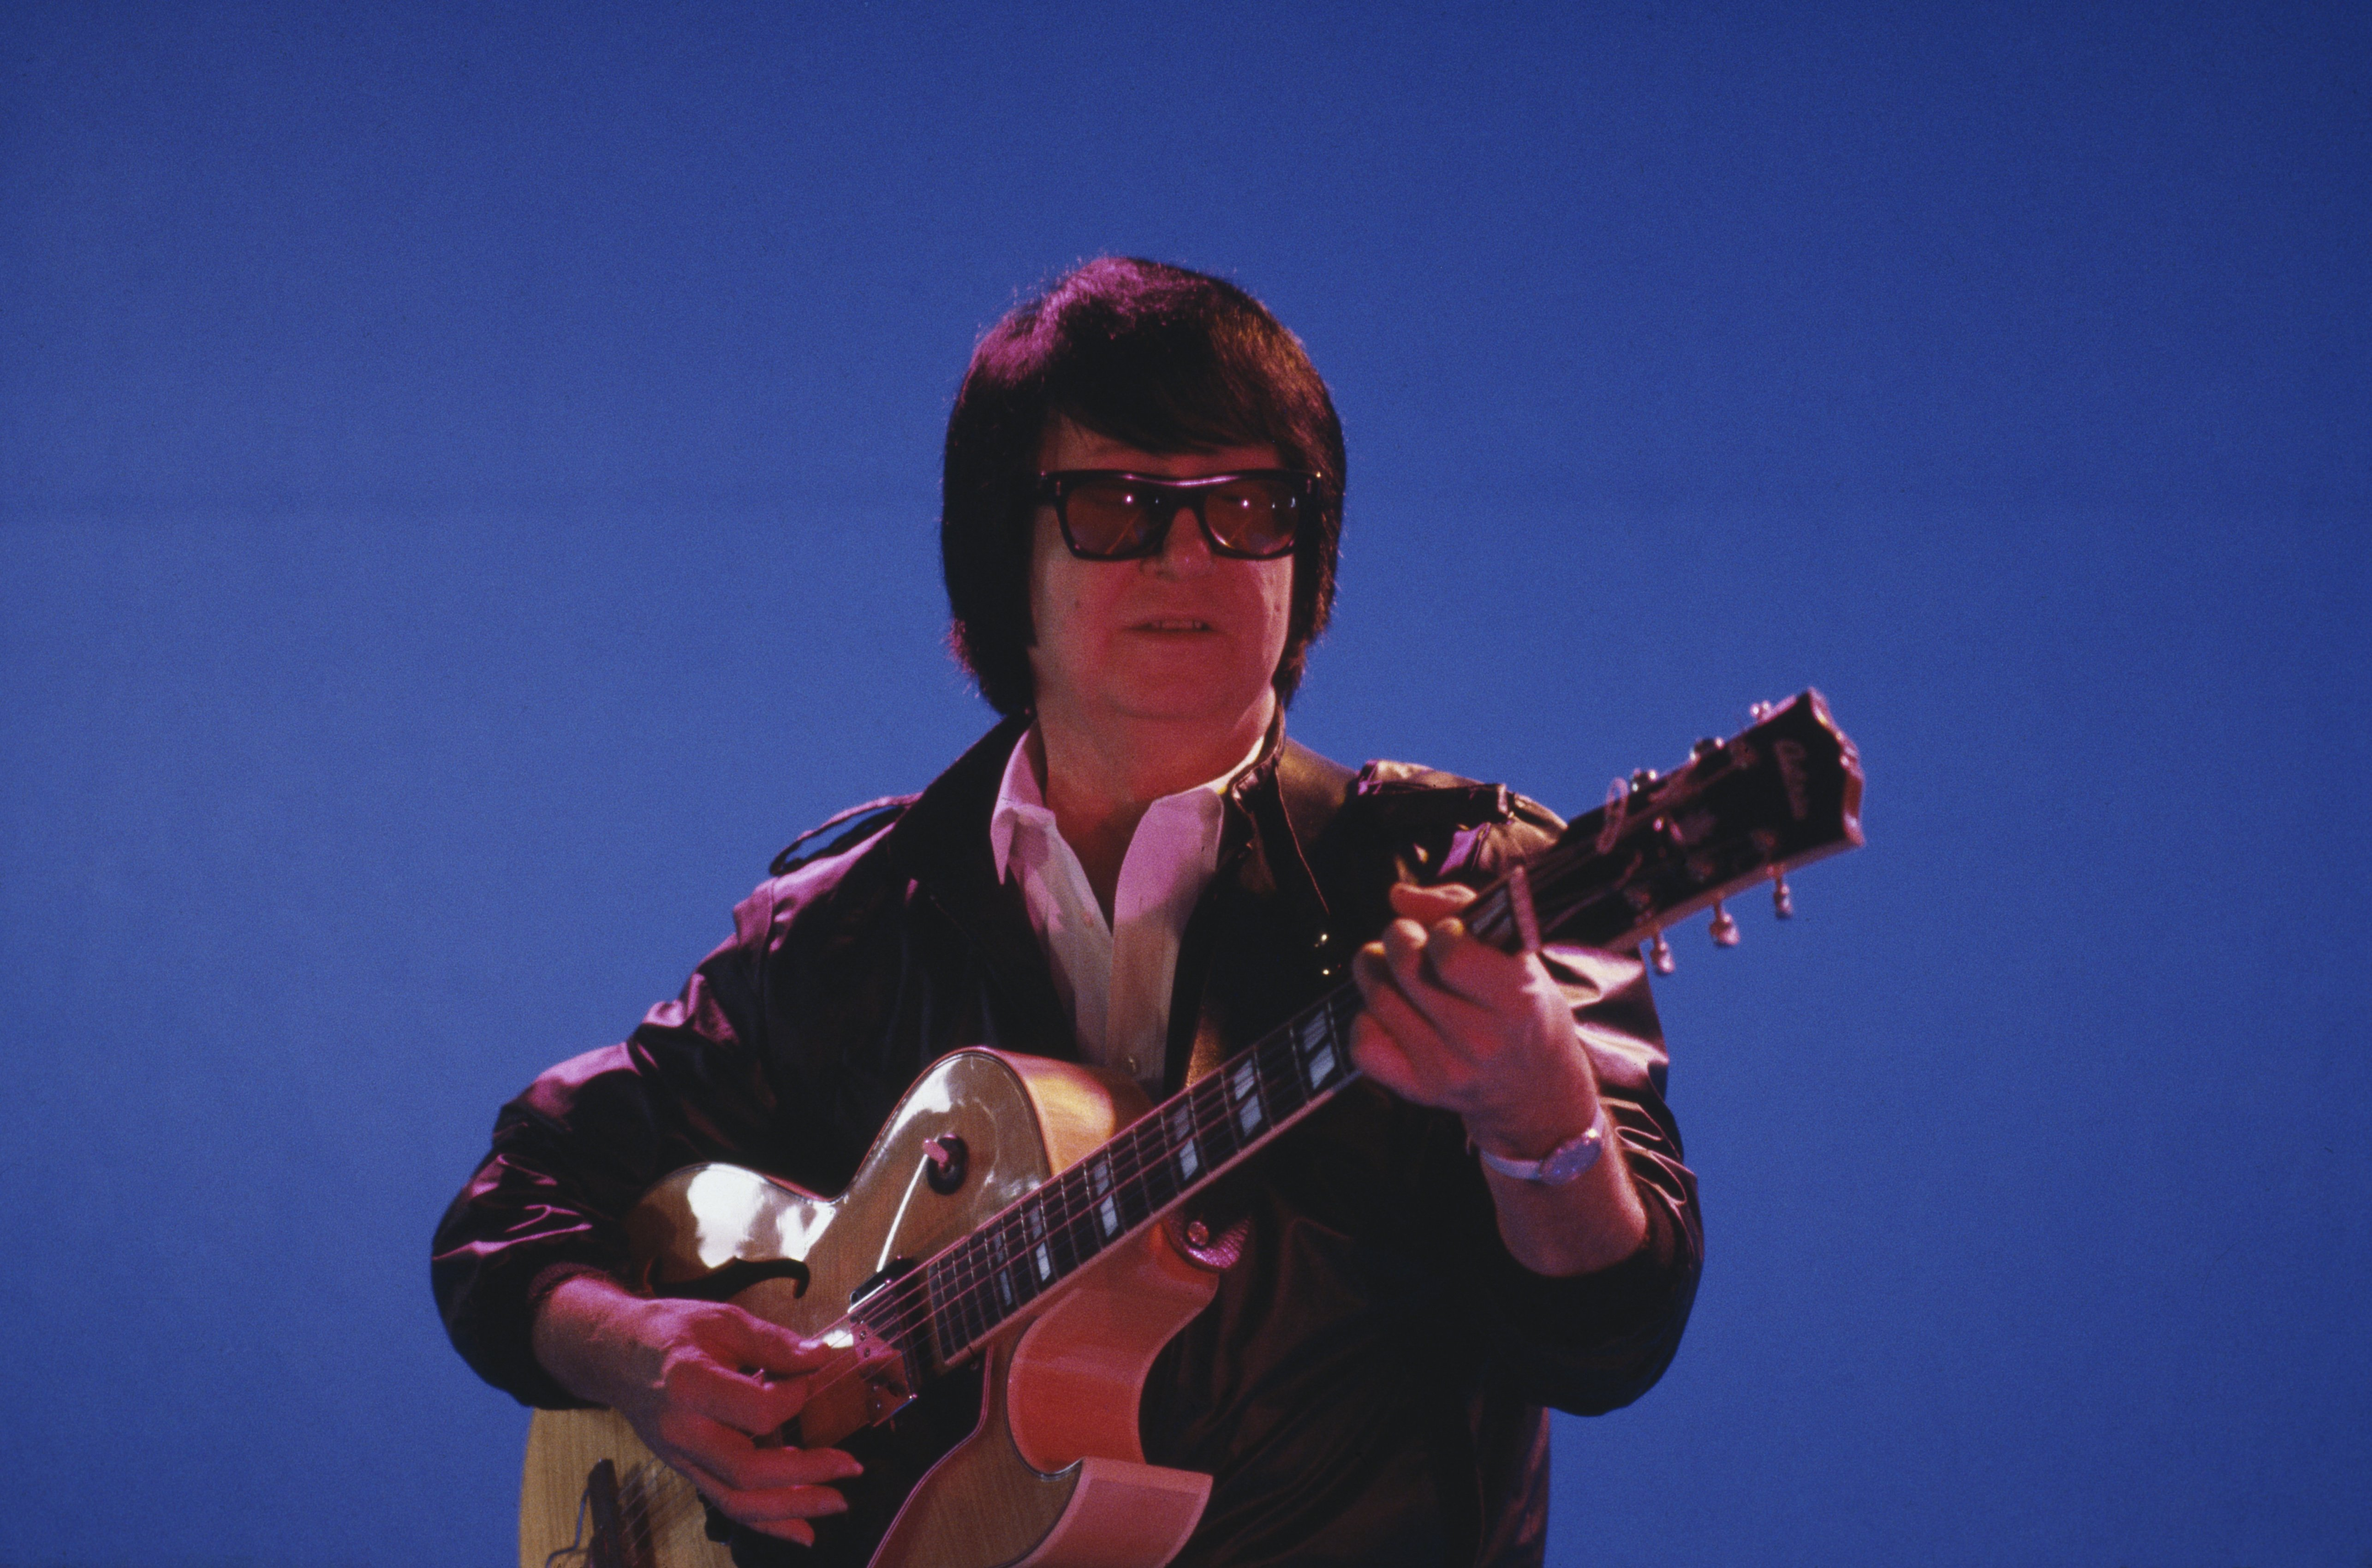 Roy Orbison circa 1980   Source: Getty Images